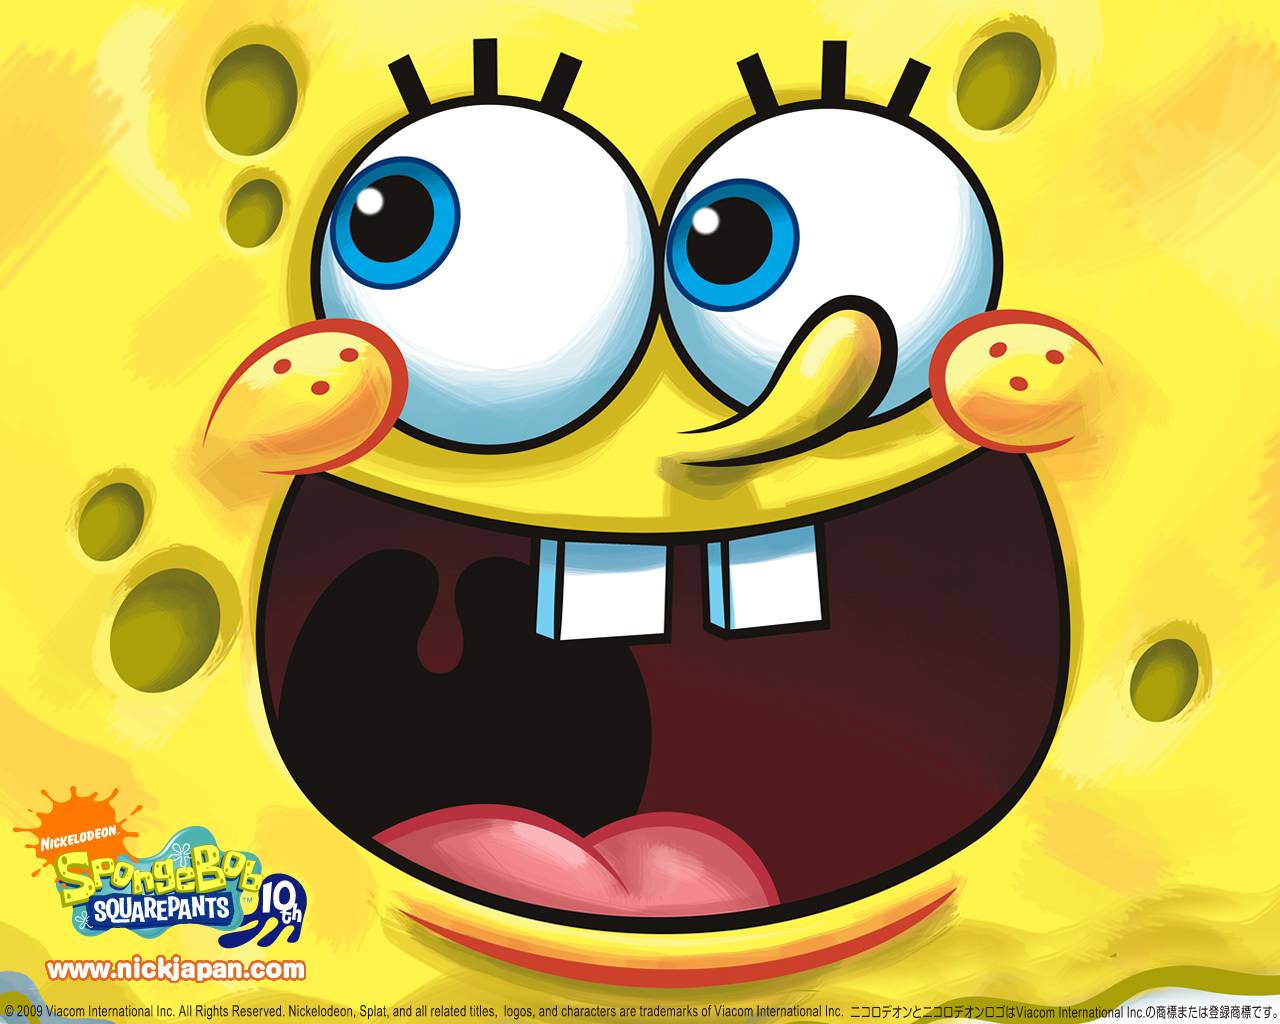 SpongeBob SquarePants wallpapers HD smile